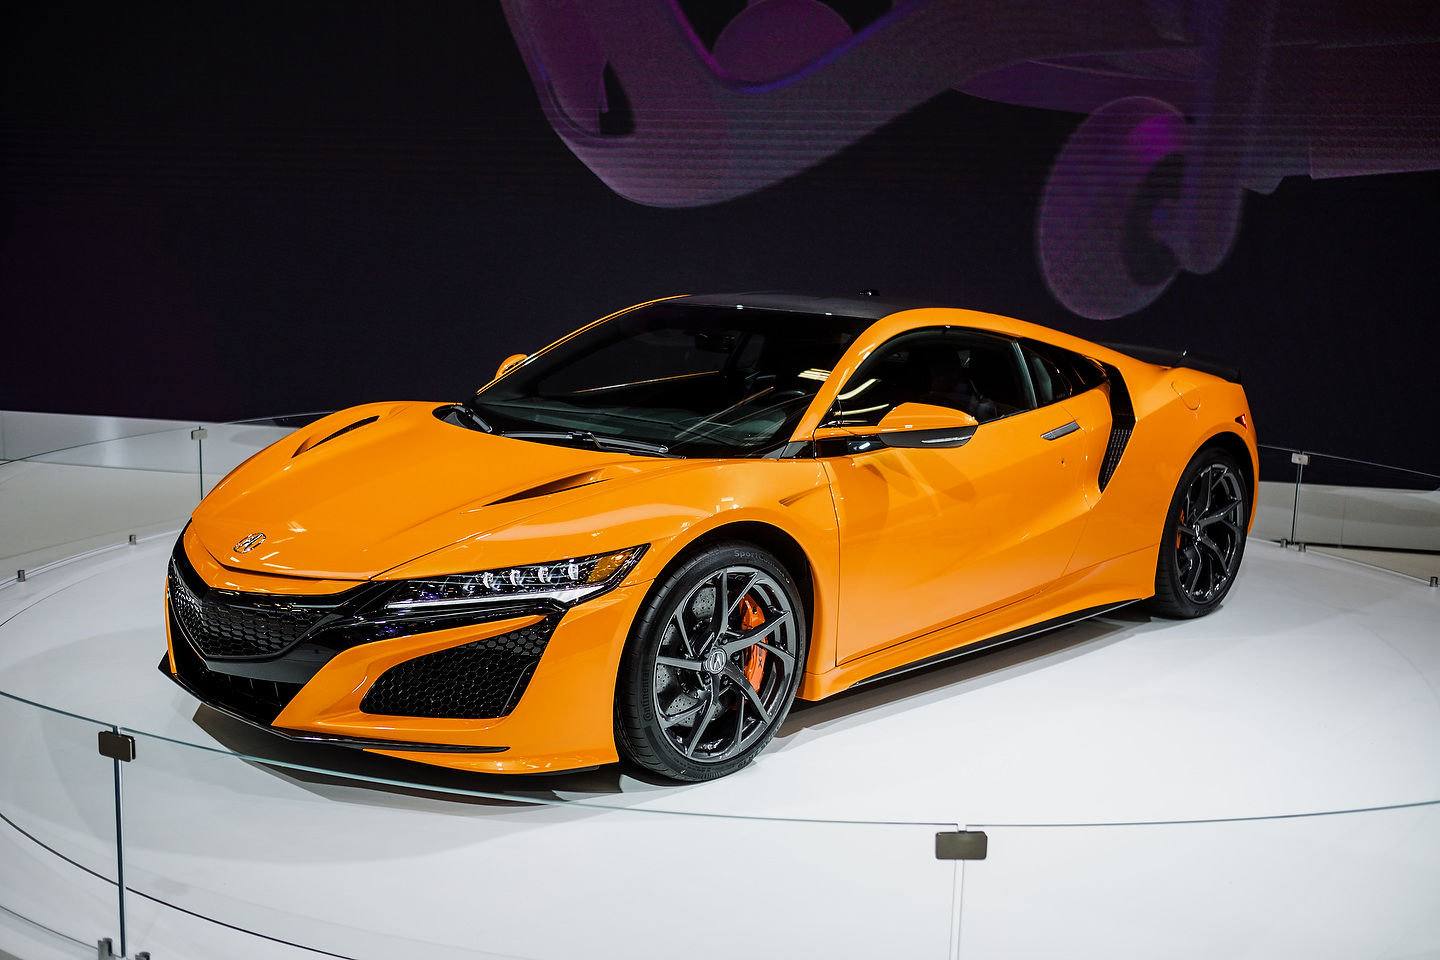 2019 Acura NSX | Photo: Olivier Delorme